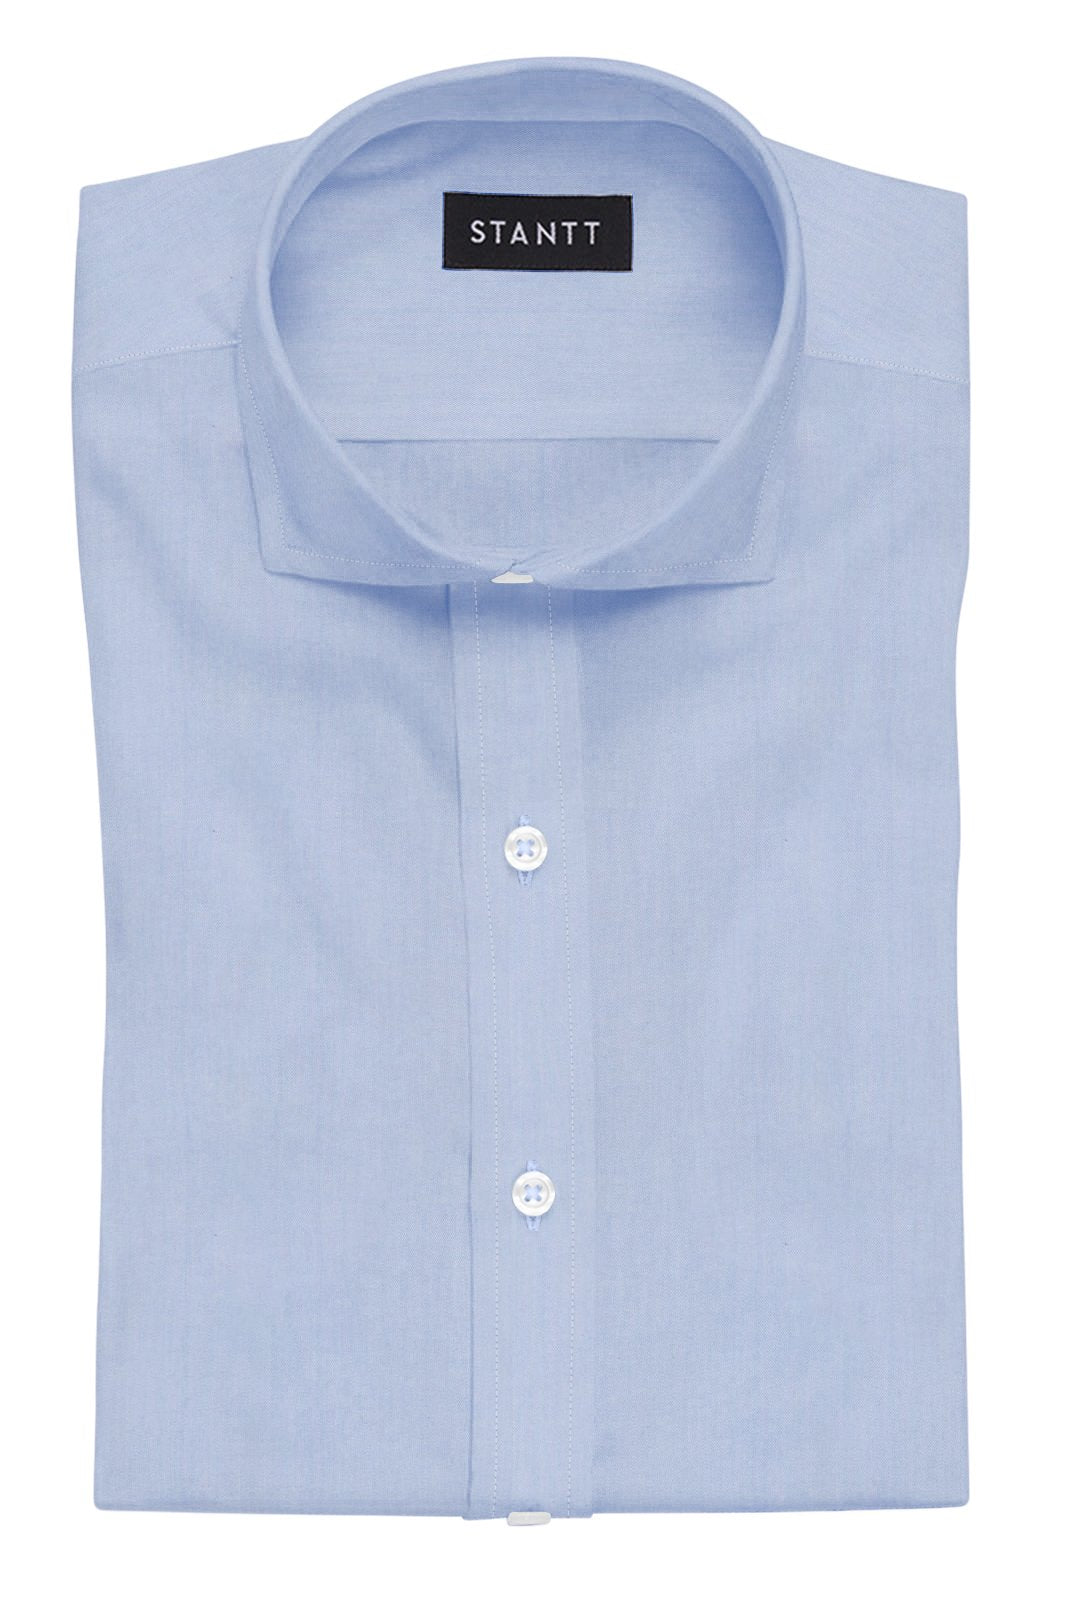 Wrinkle-Resistant Light Blue Twill: Cutaway Collar, Barrel Cuff